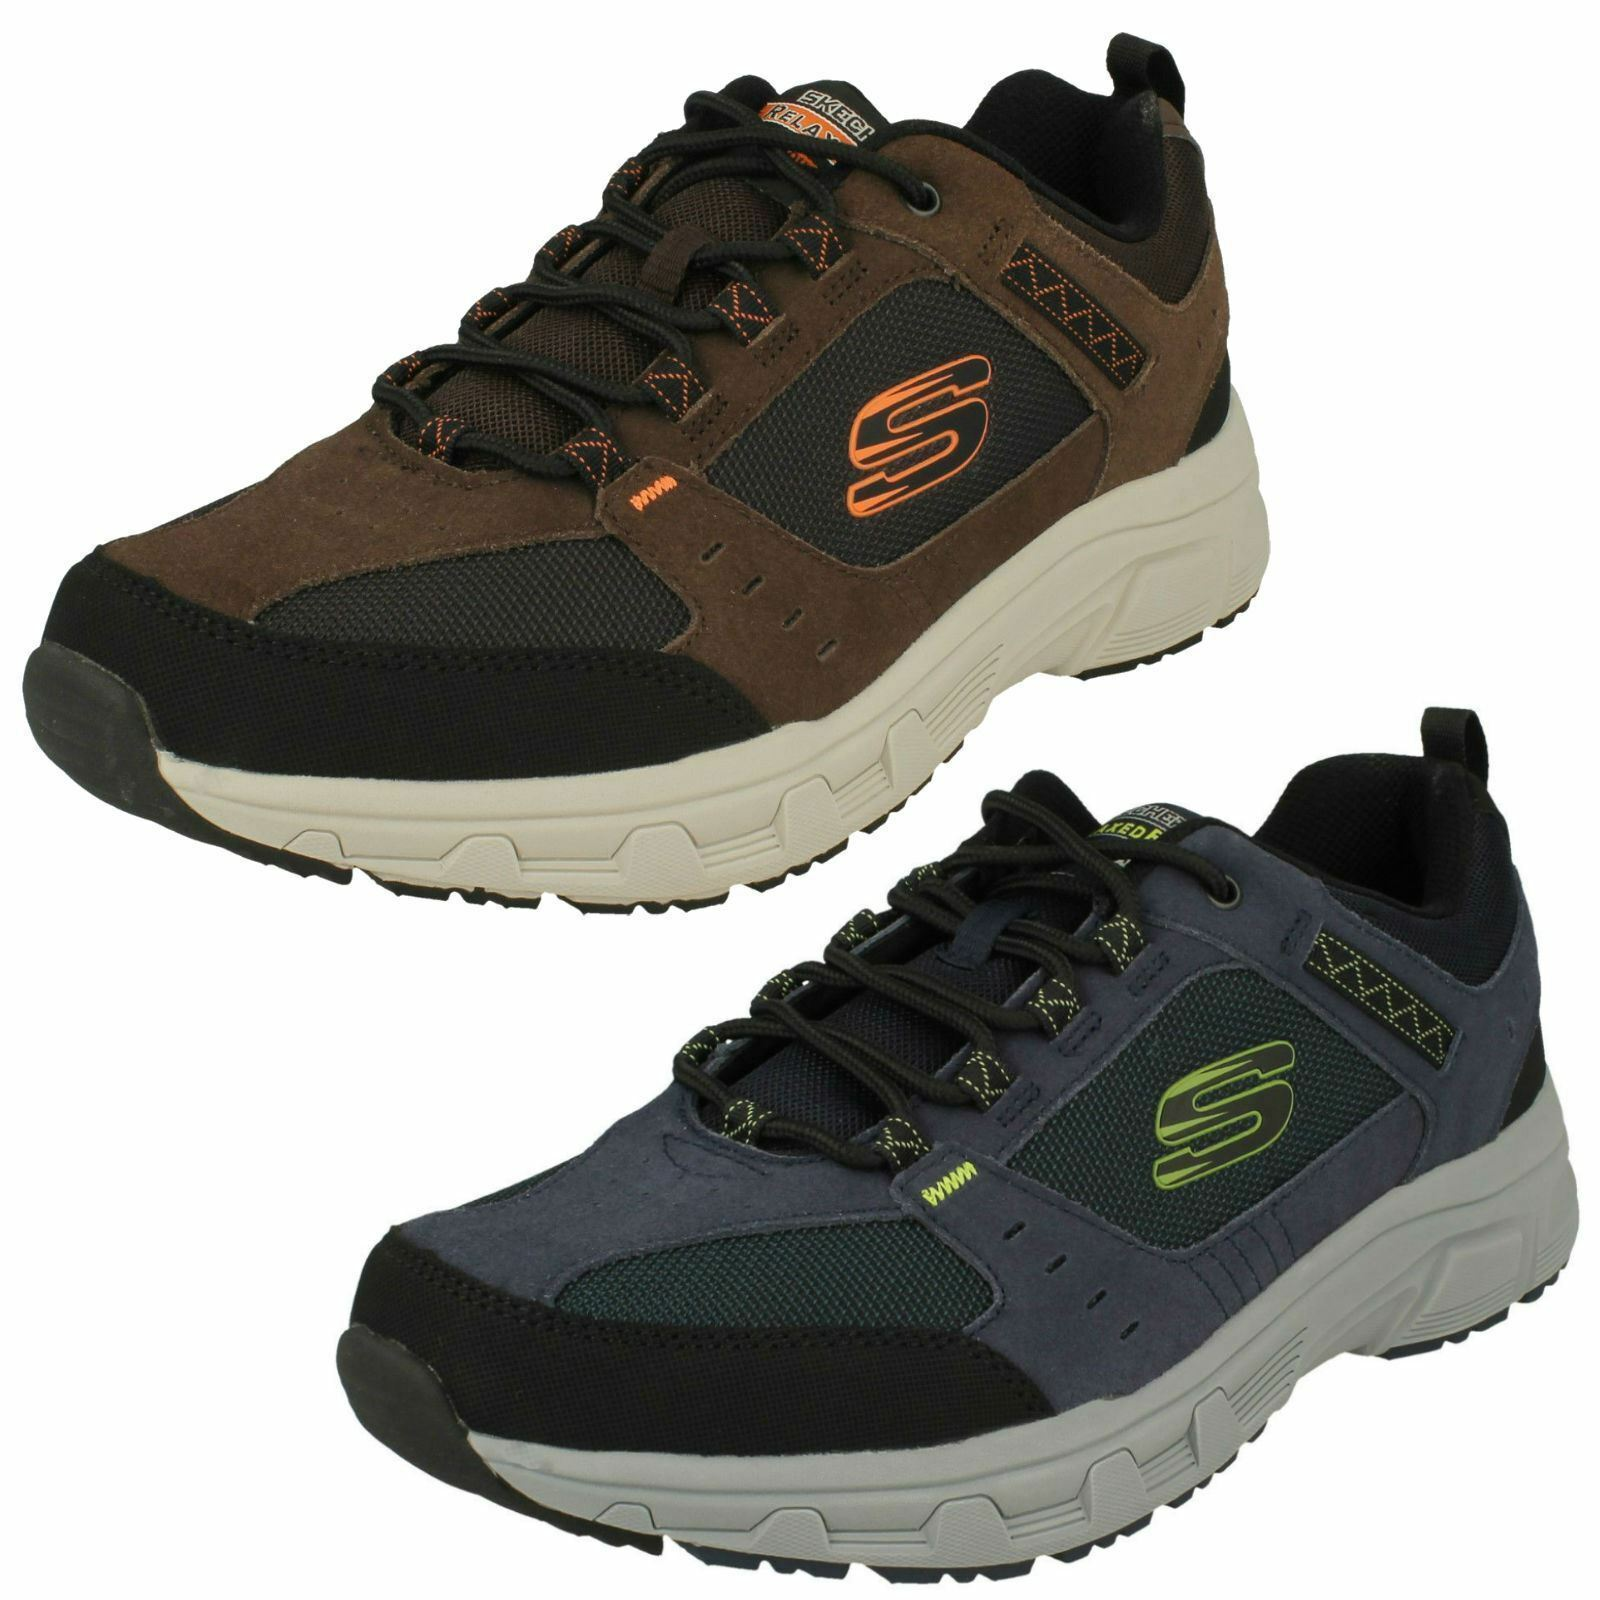 Mens Skechers Outdoor Oak Canyon - 51893 Lace Up Trainers